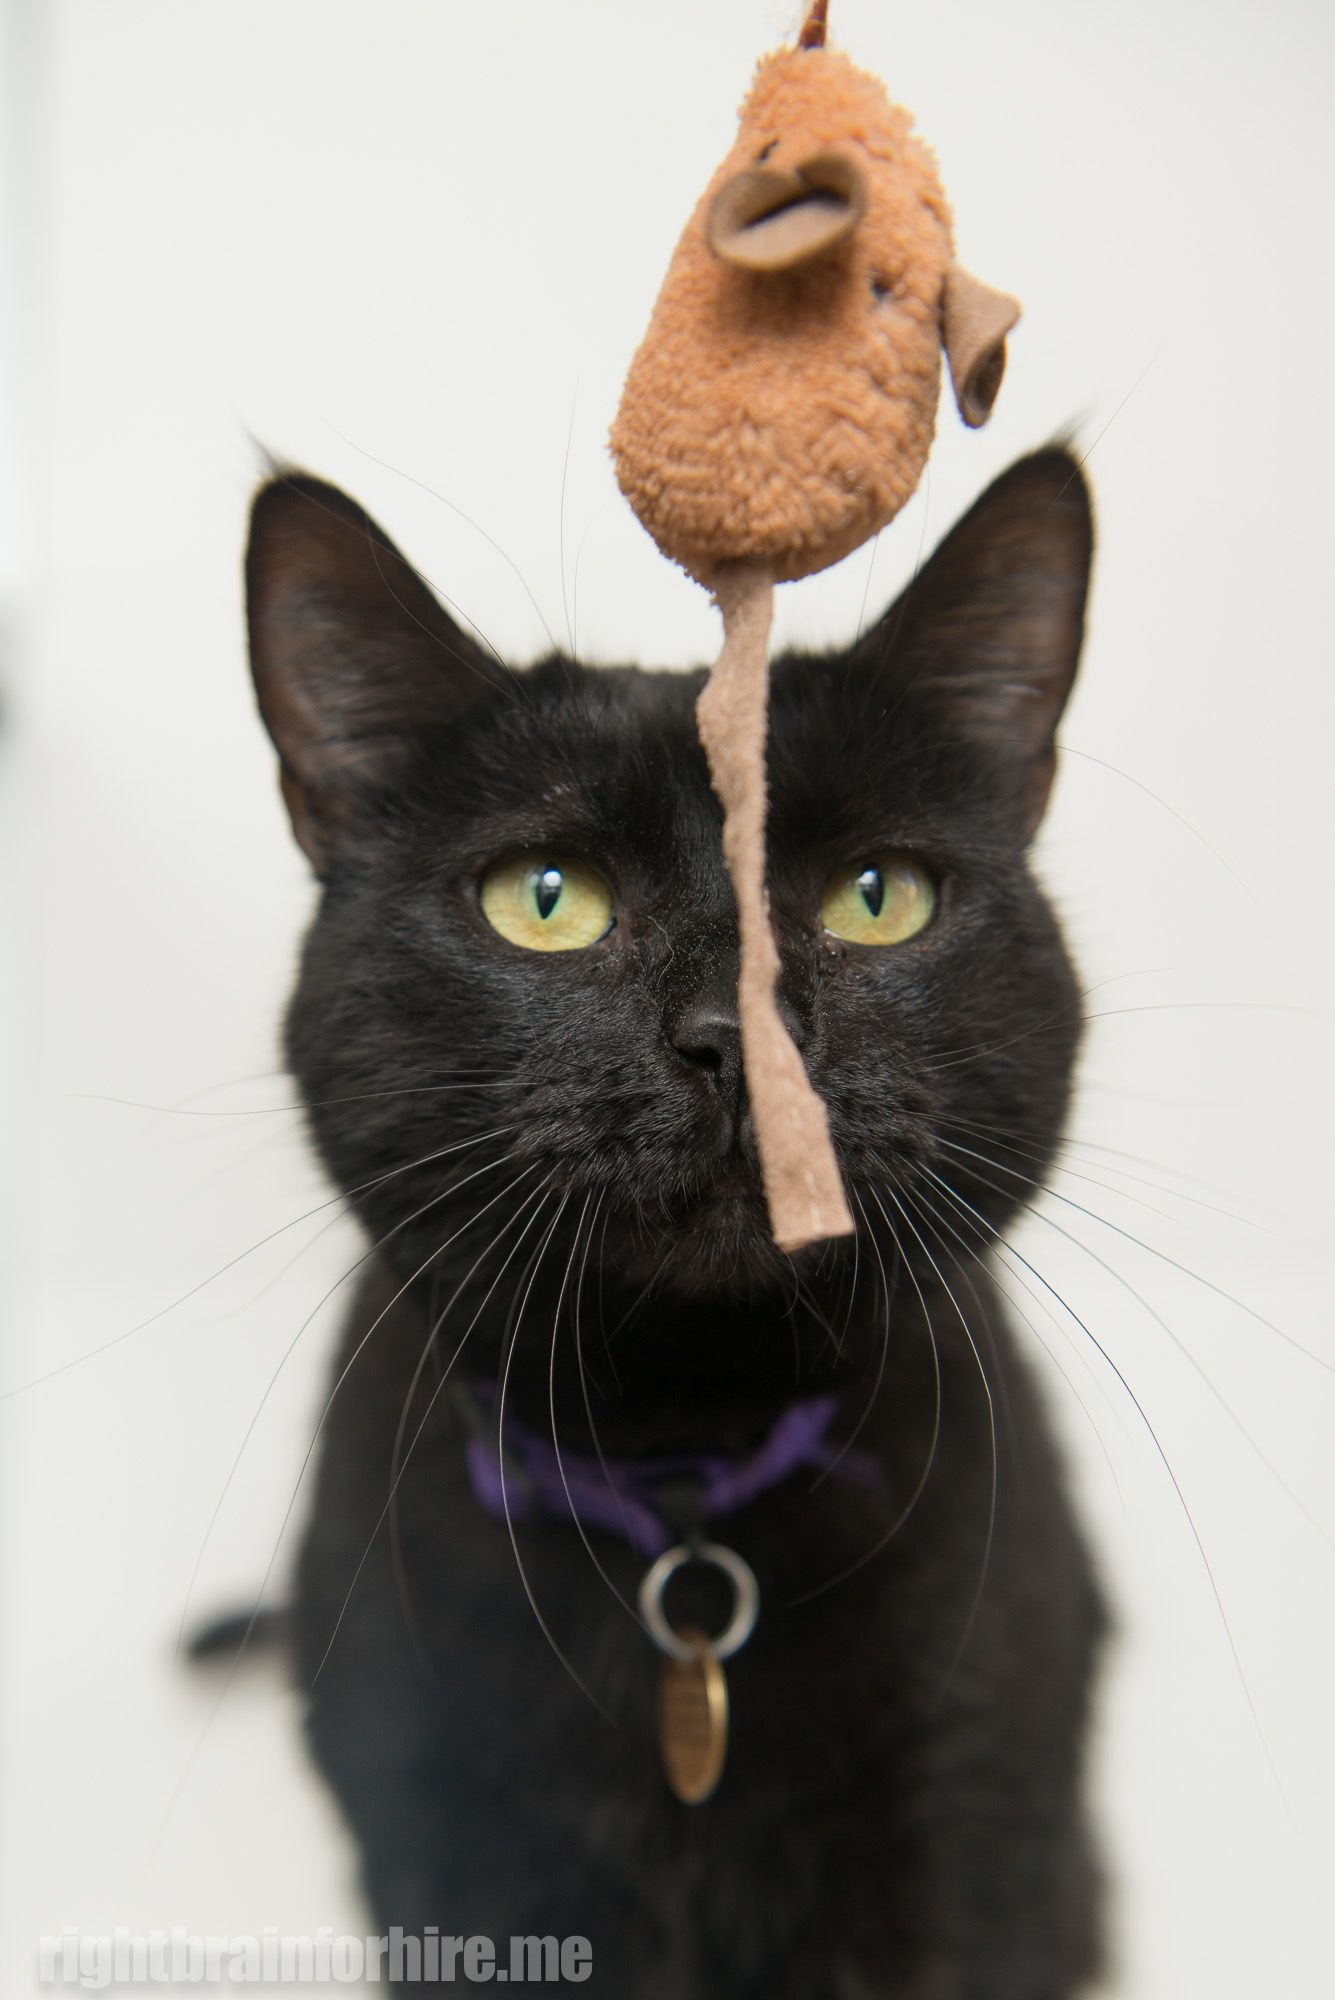 Update Adopted March 2014 Shadow Is A Beautiful Black Cat Who Is Very Playful She Will Follow You Around And Entrance You With Her Cat Adoption Cats Pet Dogs